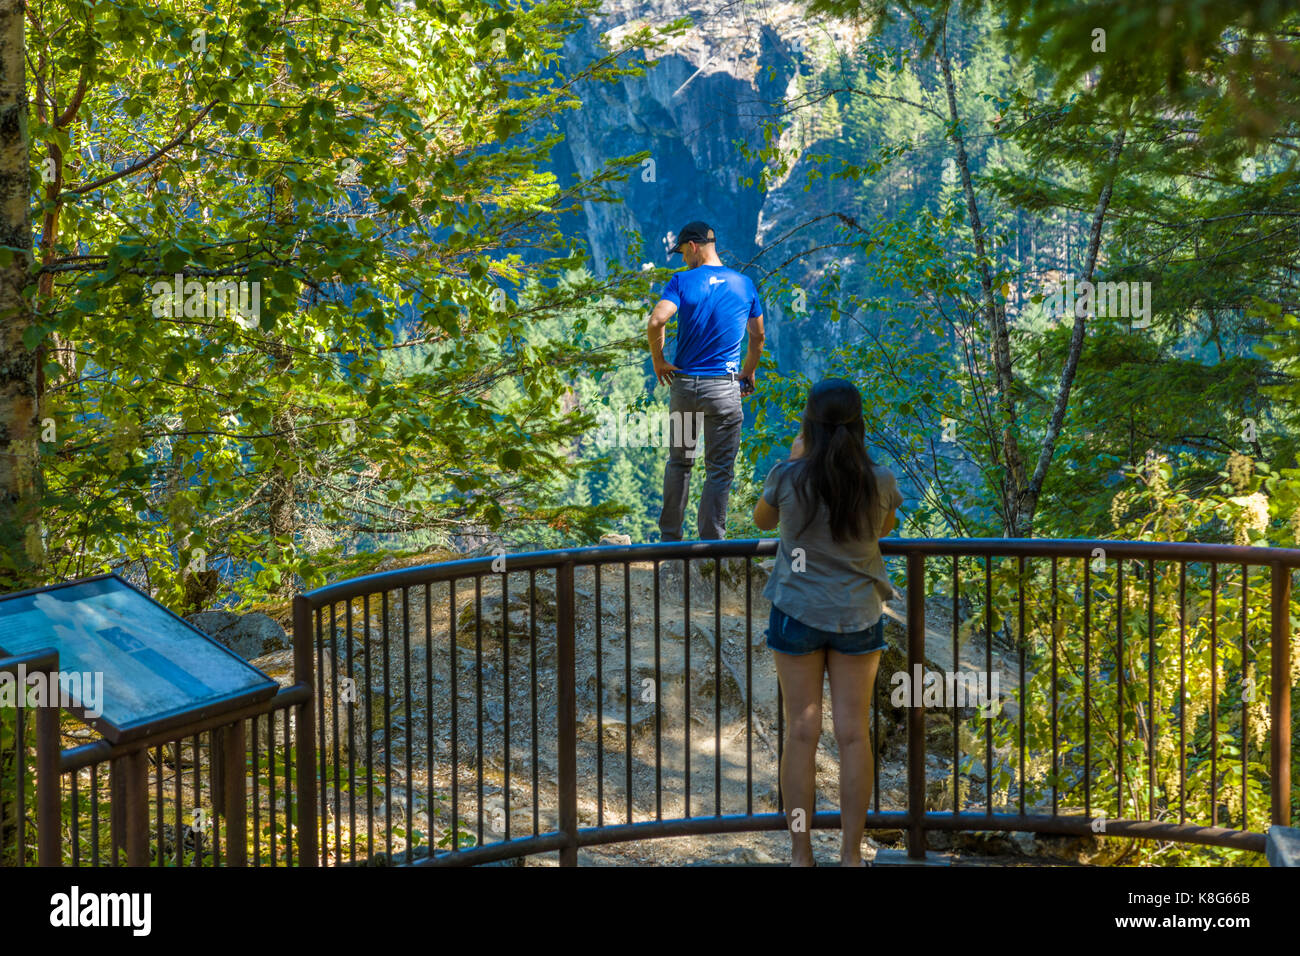 Man over the fence in North Cascades National Park in Northwest Washington State - Stock Image